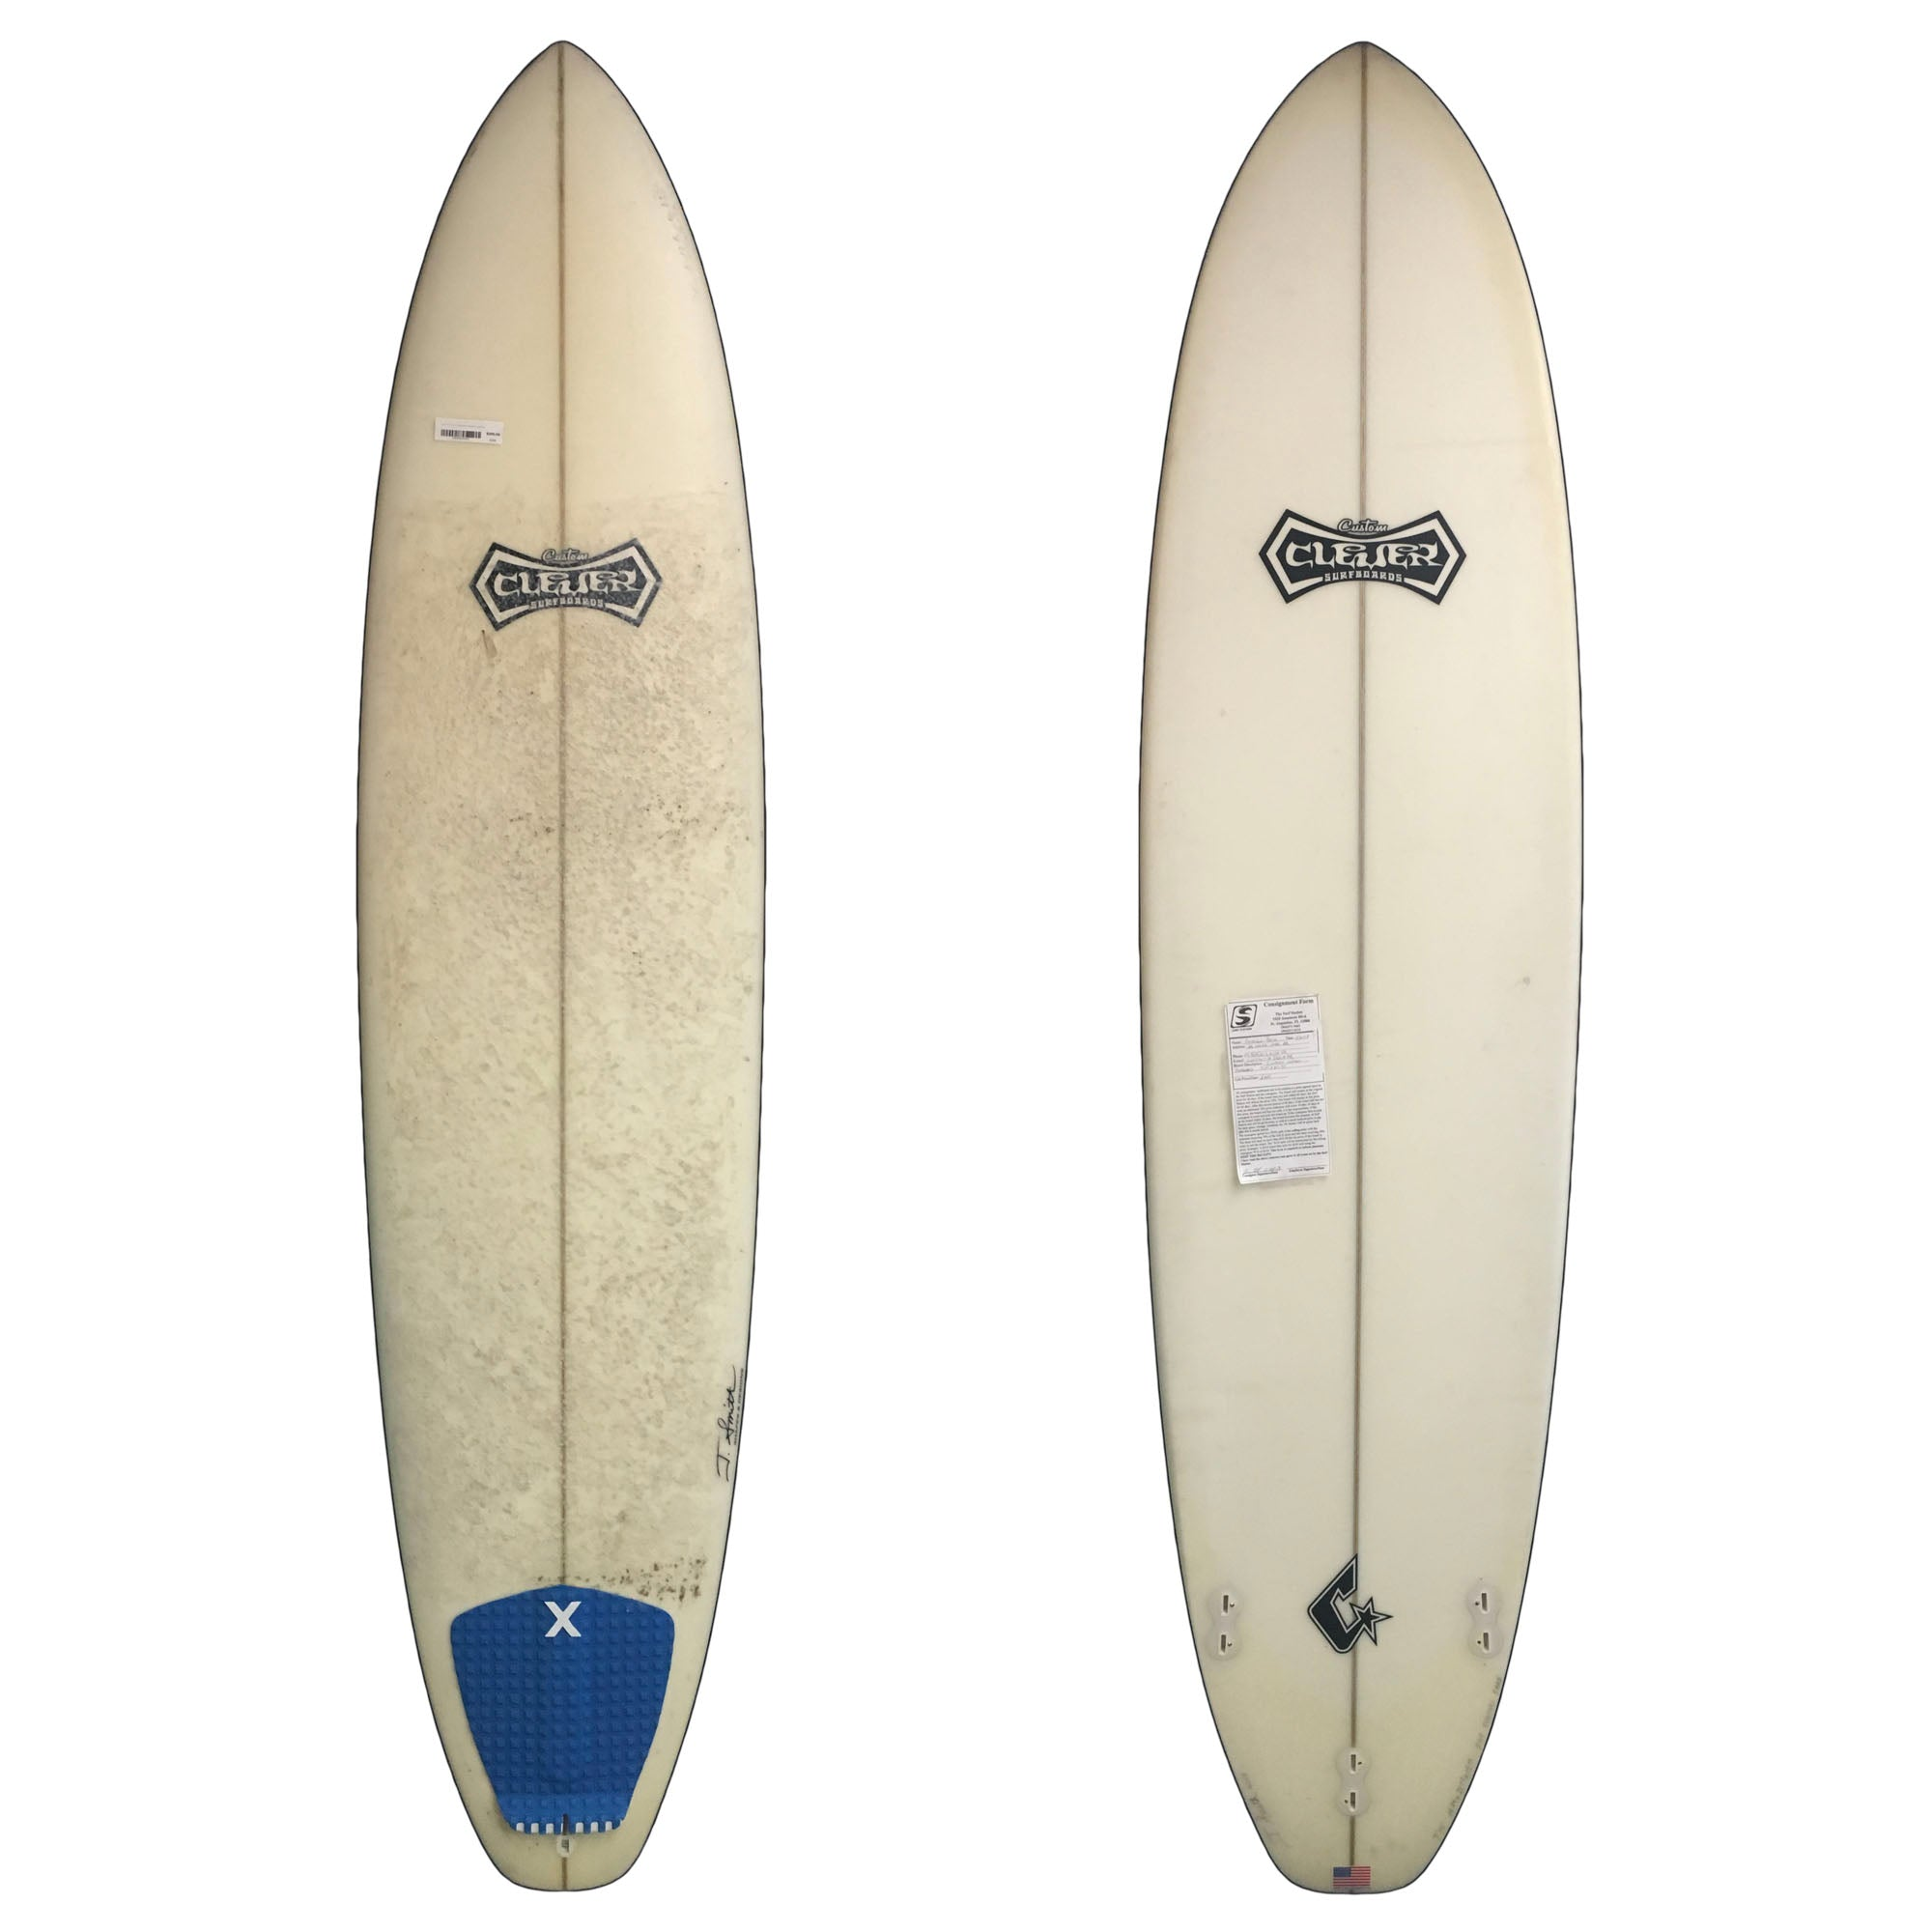 Clever Funshape 7'10 Used Surfboard